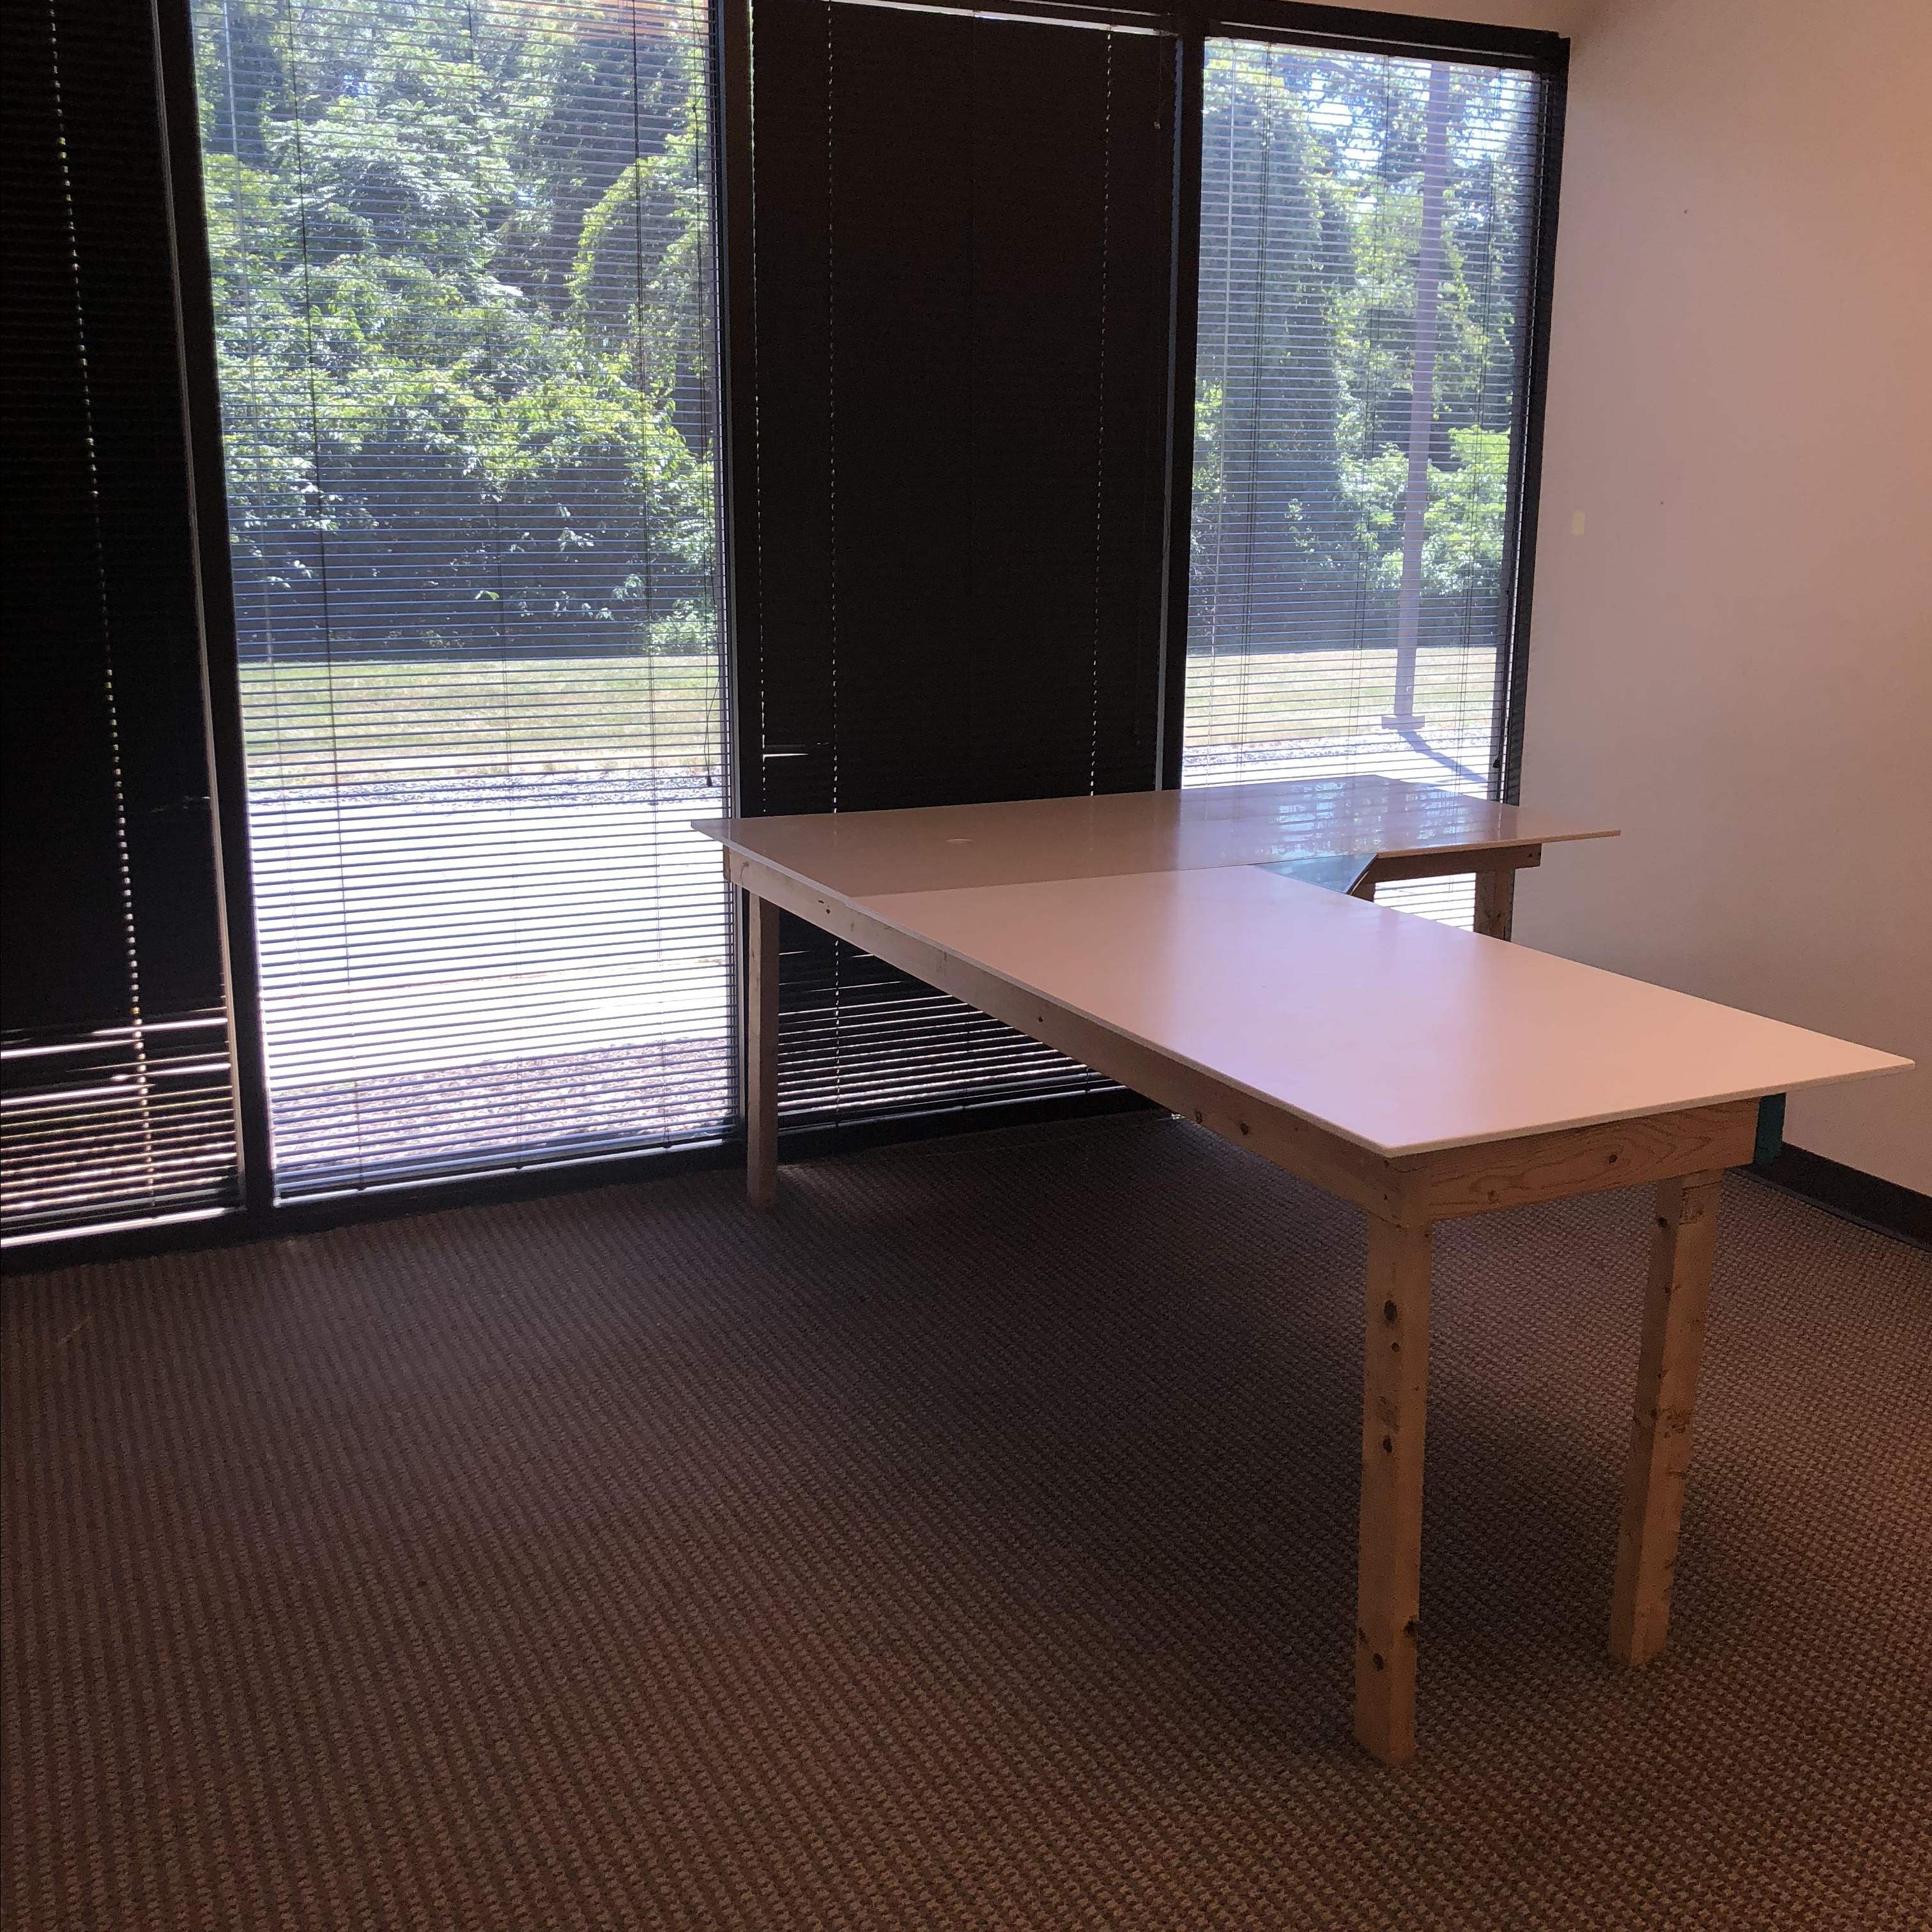 Surface Link - Individual Office 1 with a Window View